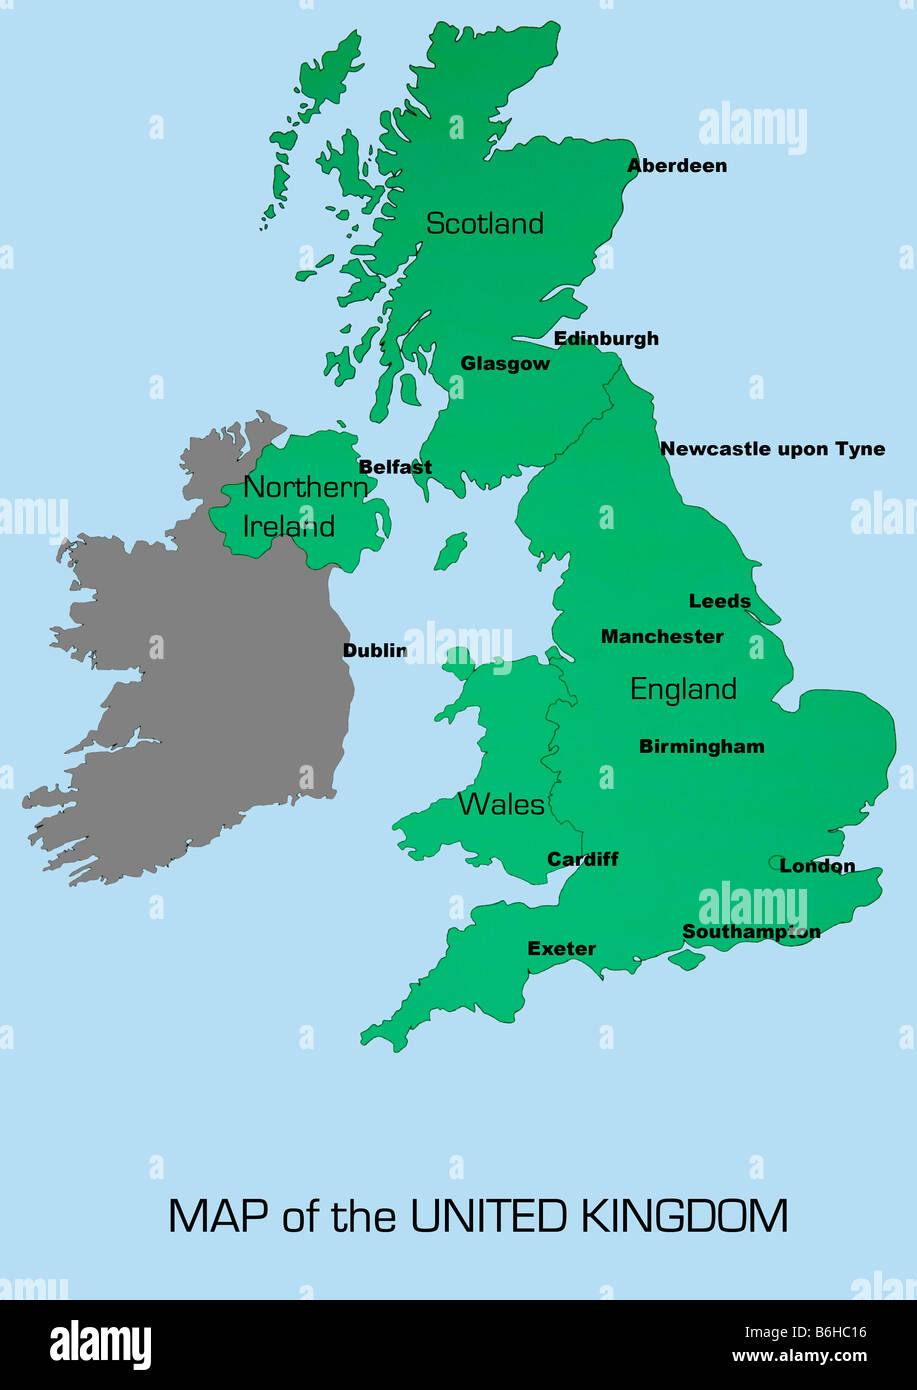 Map Of Major Uk Cities.Uk Map Showing England Scotland Wales And Northern Ireland With